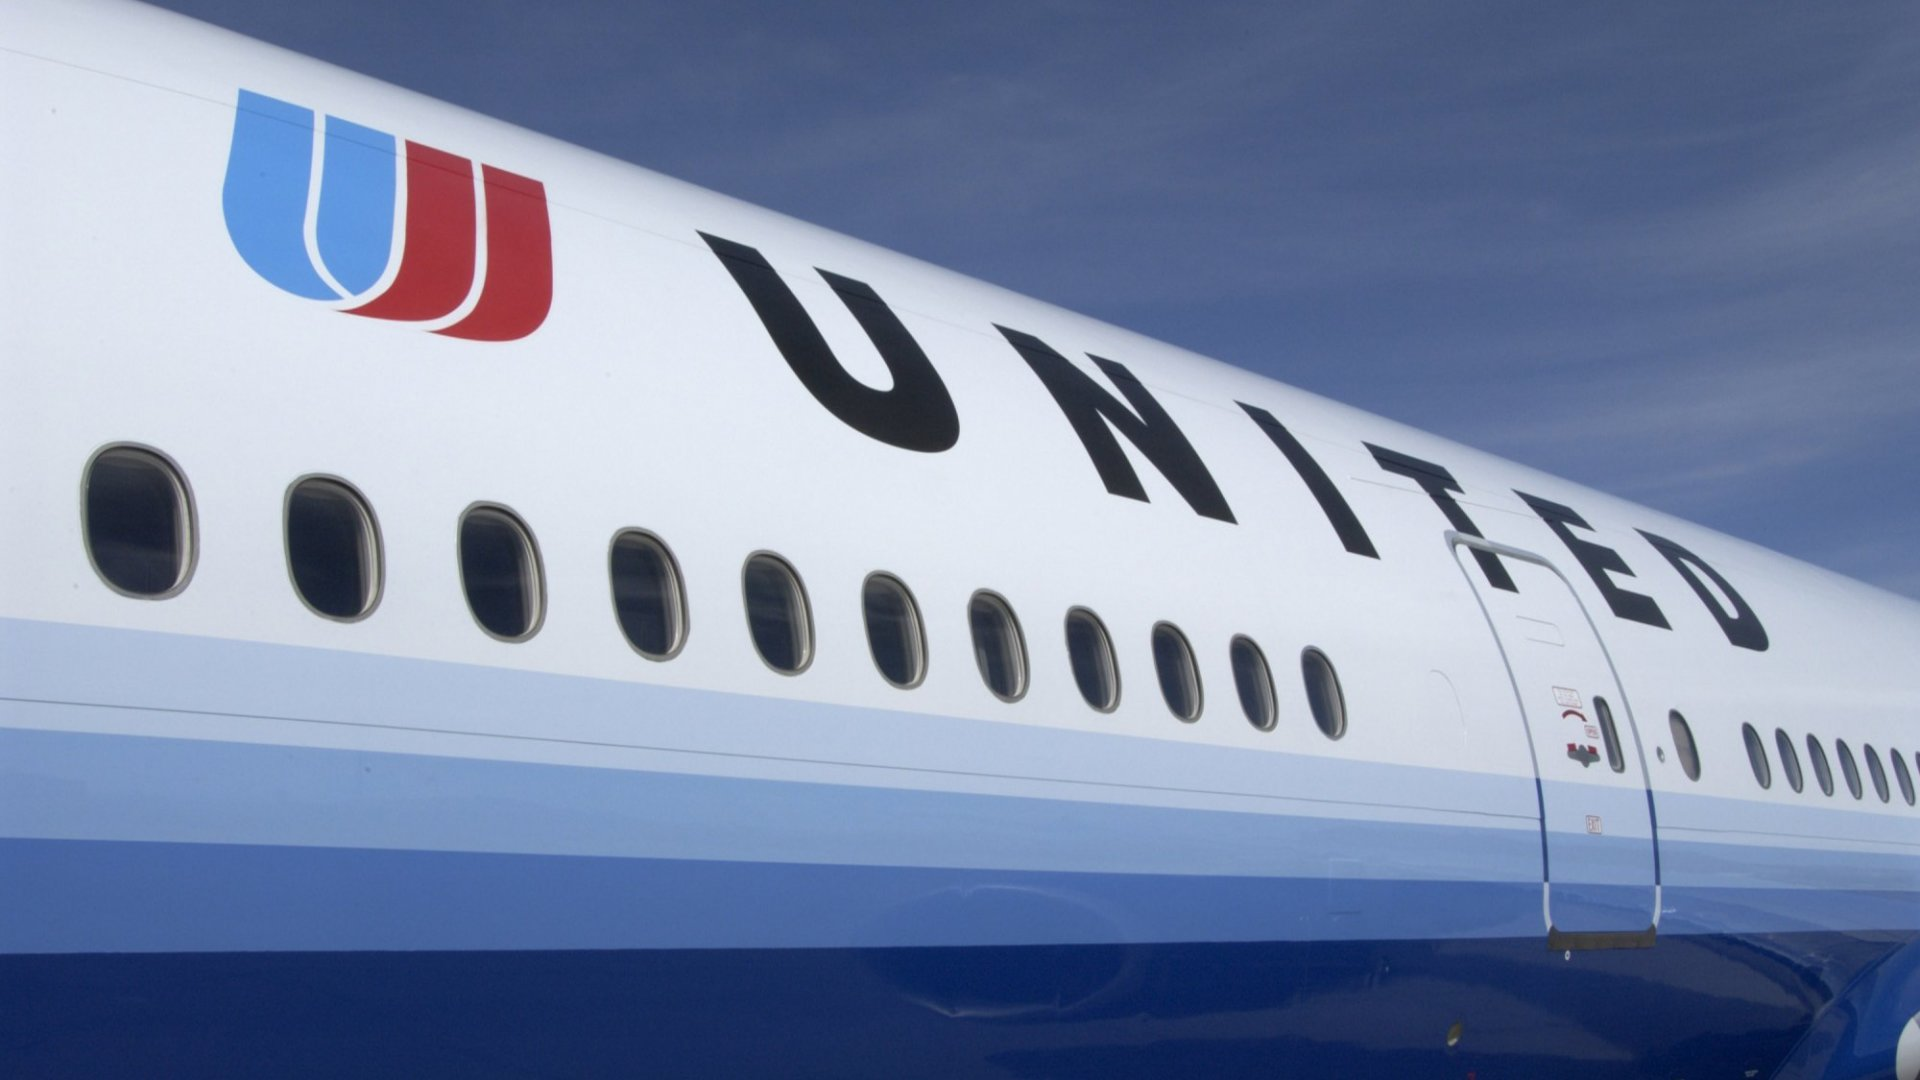 United Airlines Just Announced a Stunning New Policy That 'Quickly Ignited a Firestorm' With Employees